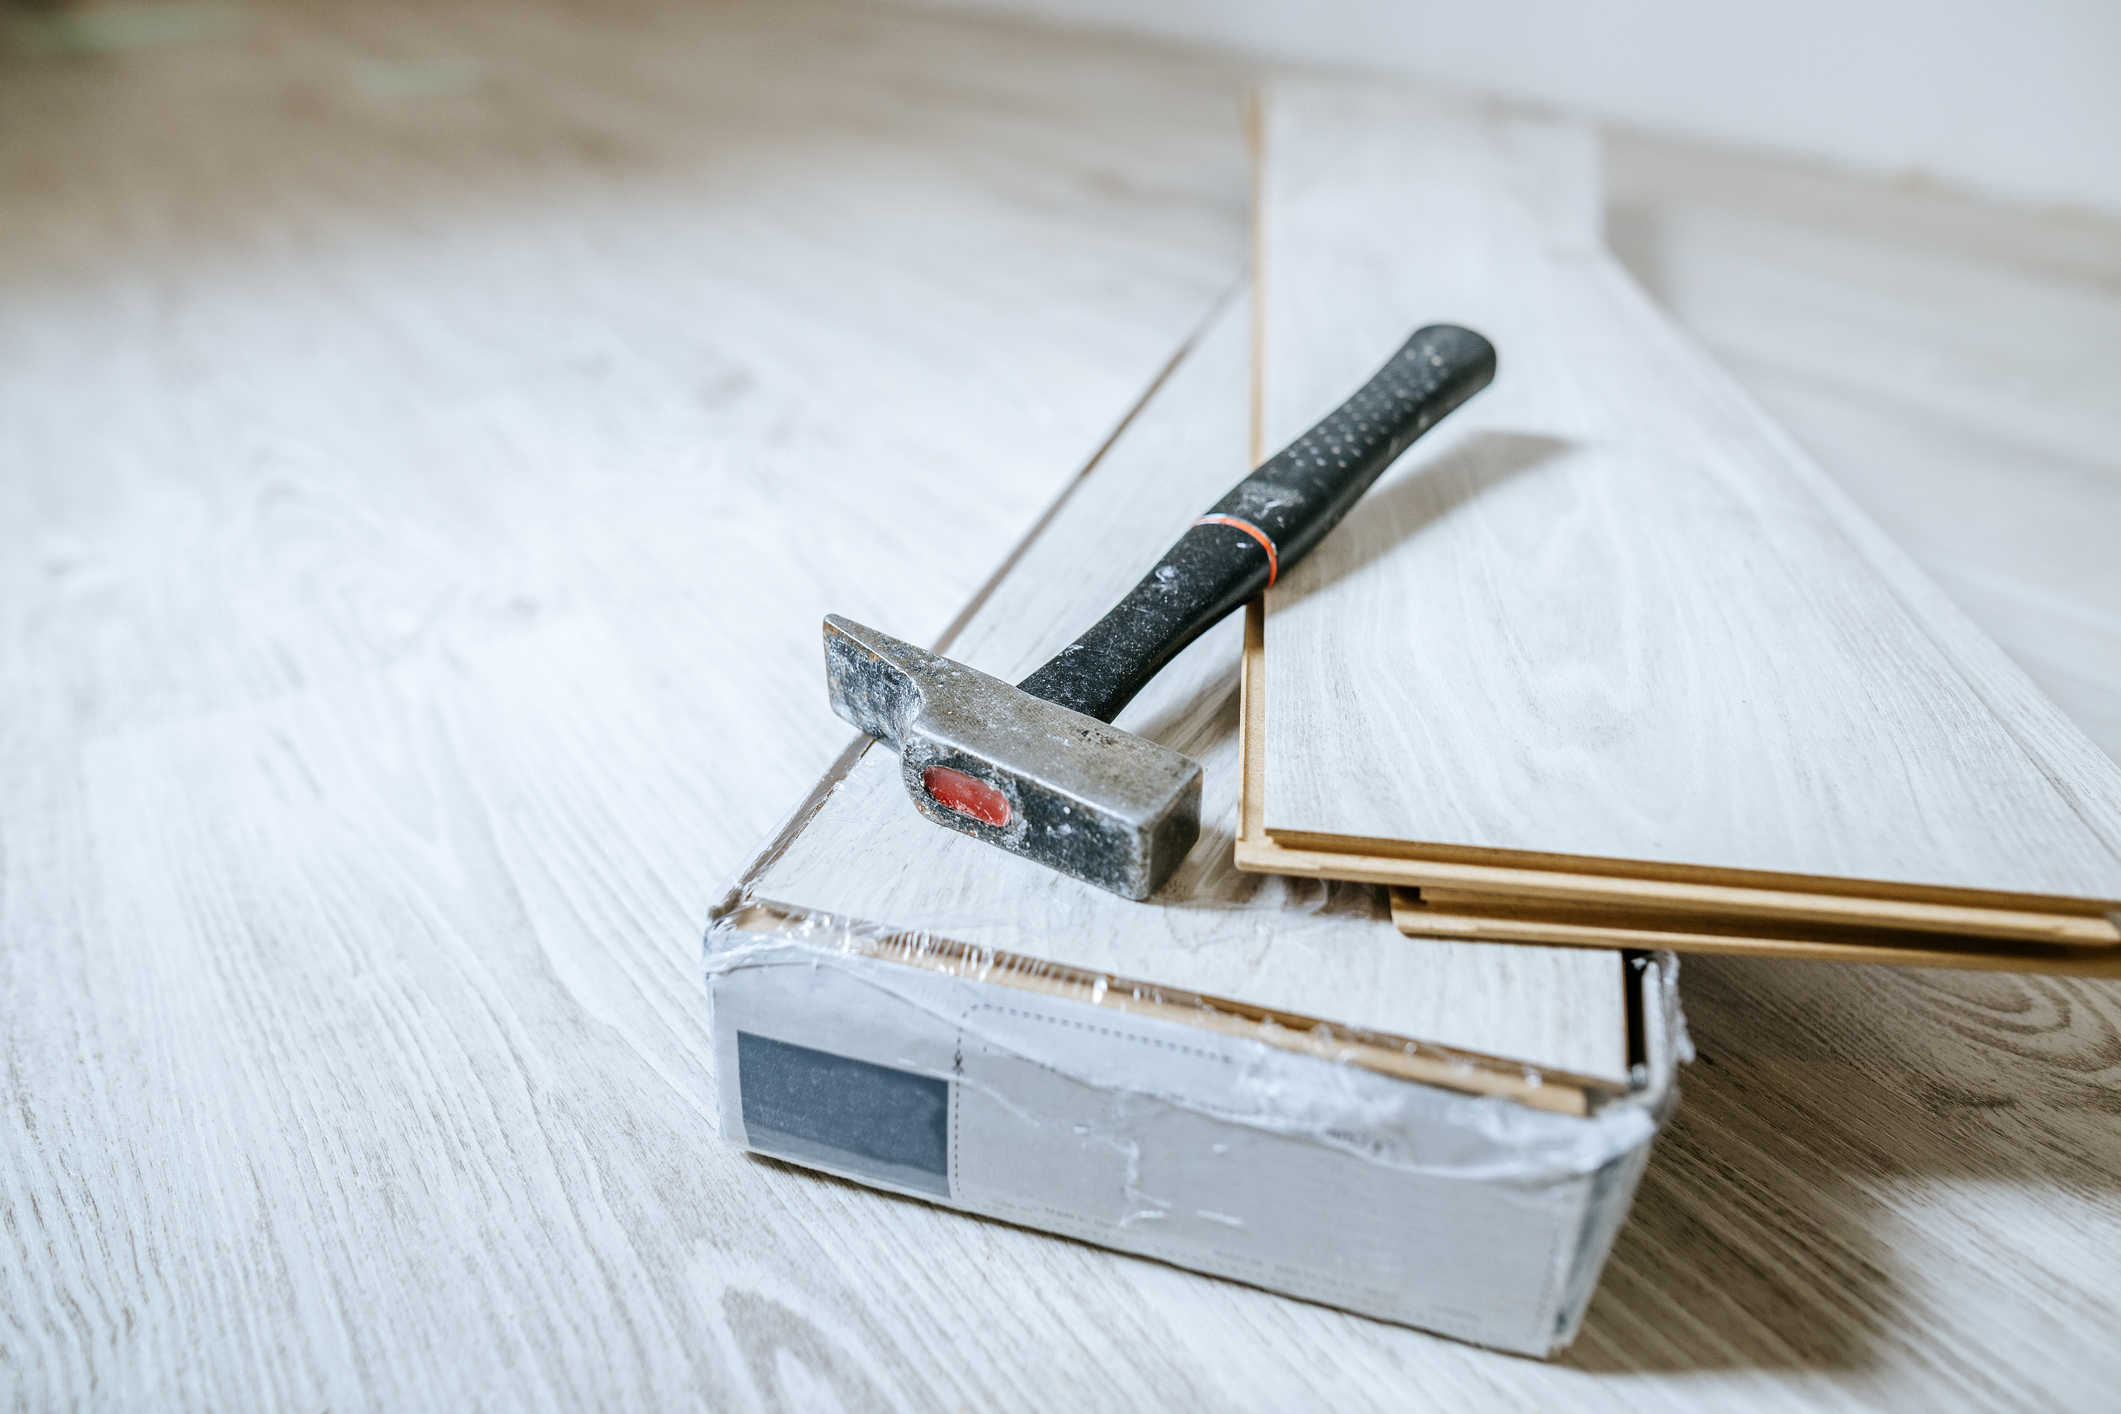 Hammer and home improvement stock image (Getty Images)